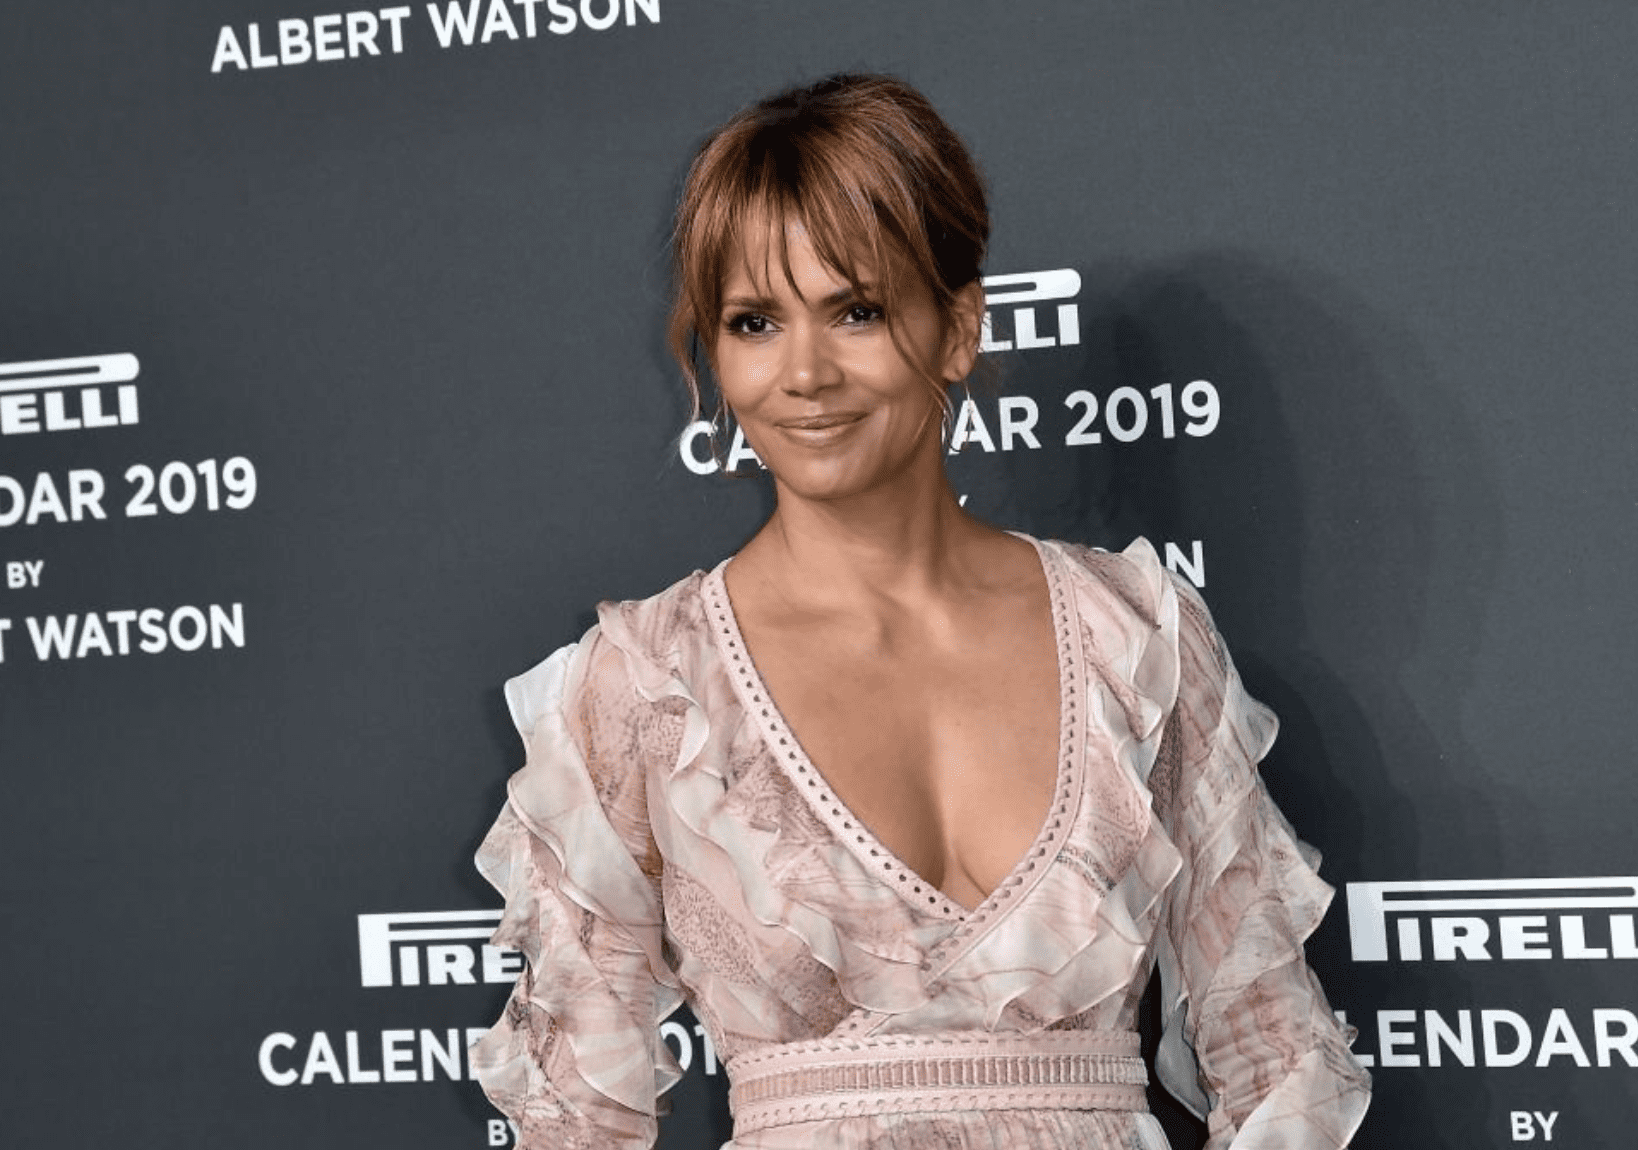 Halle Berry on the red carpet ahead of the 2019 Pirelli Calendar launch gala at HangarBicocca on December 5, 2018. | Source: Getty Images